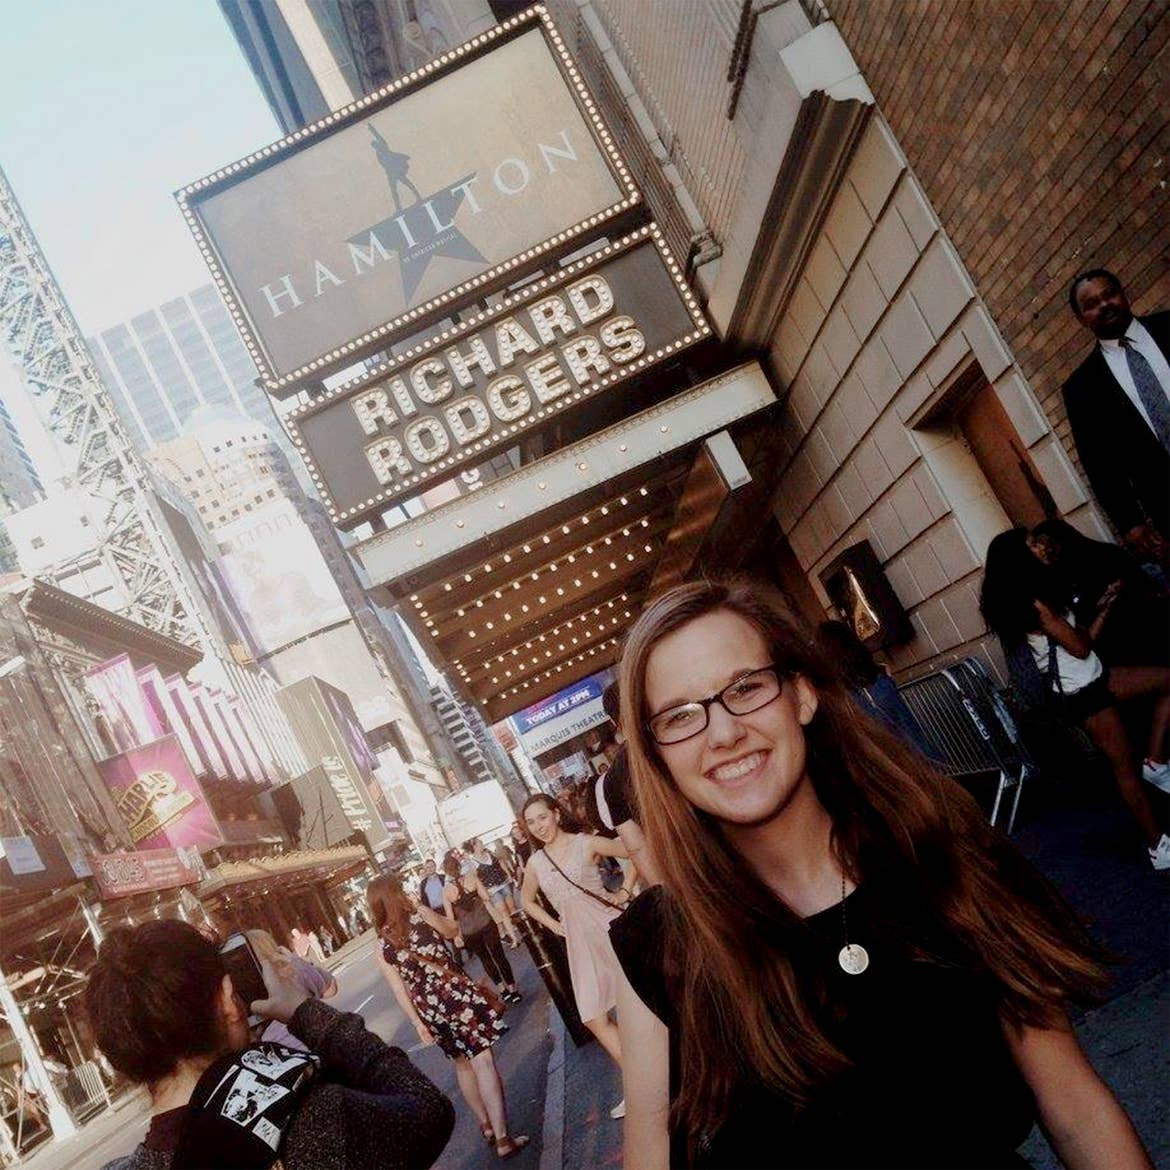 A caucasian woman with long ash-blonde hair wears a pair of black sunglasses and t-shirt under a marquee that reads, 'Hamilton, Richard Rodgers Theater' in New York City.